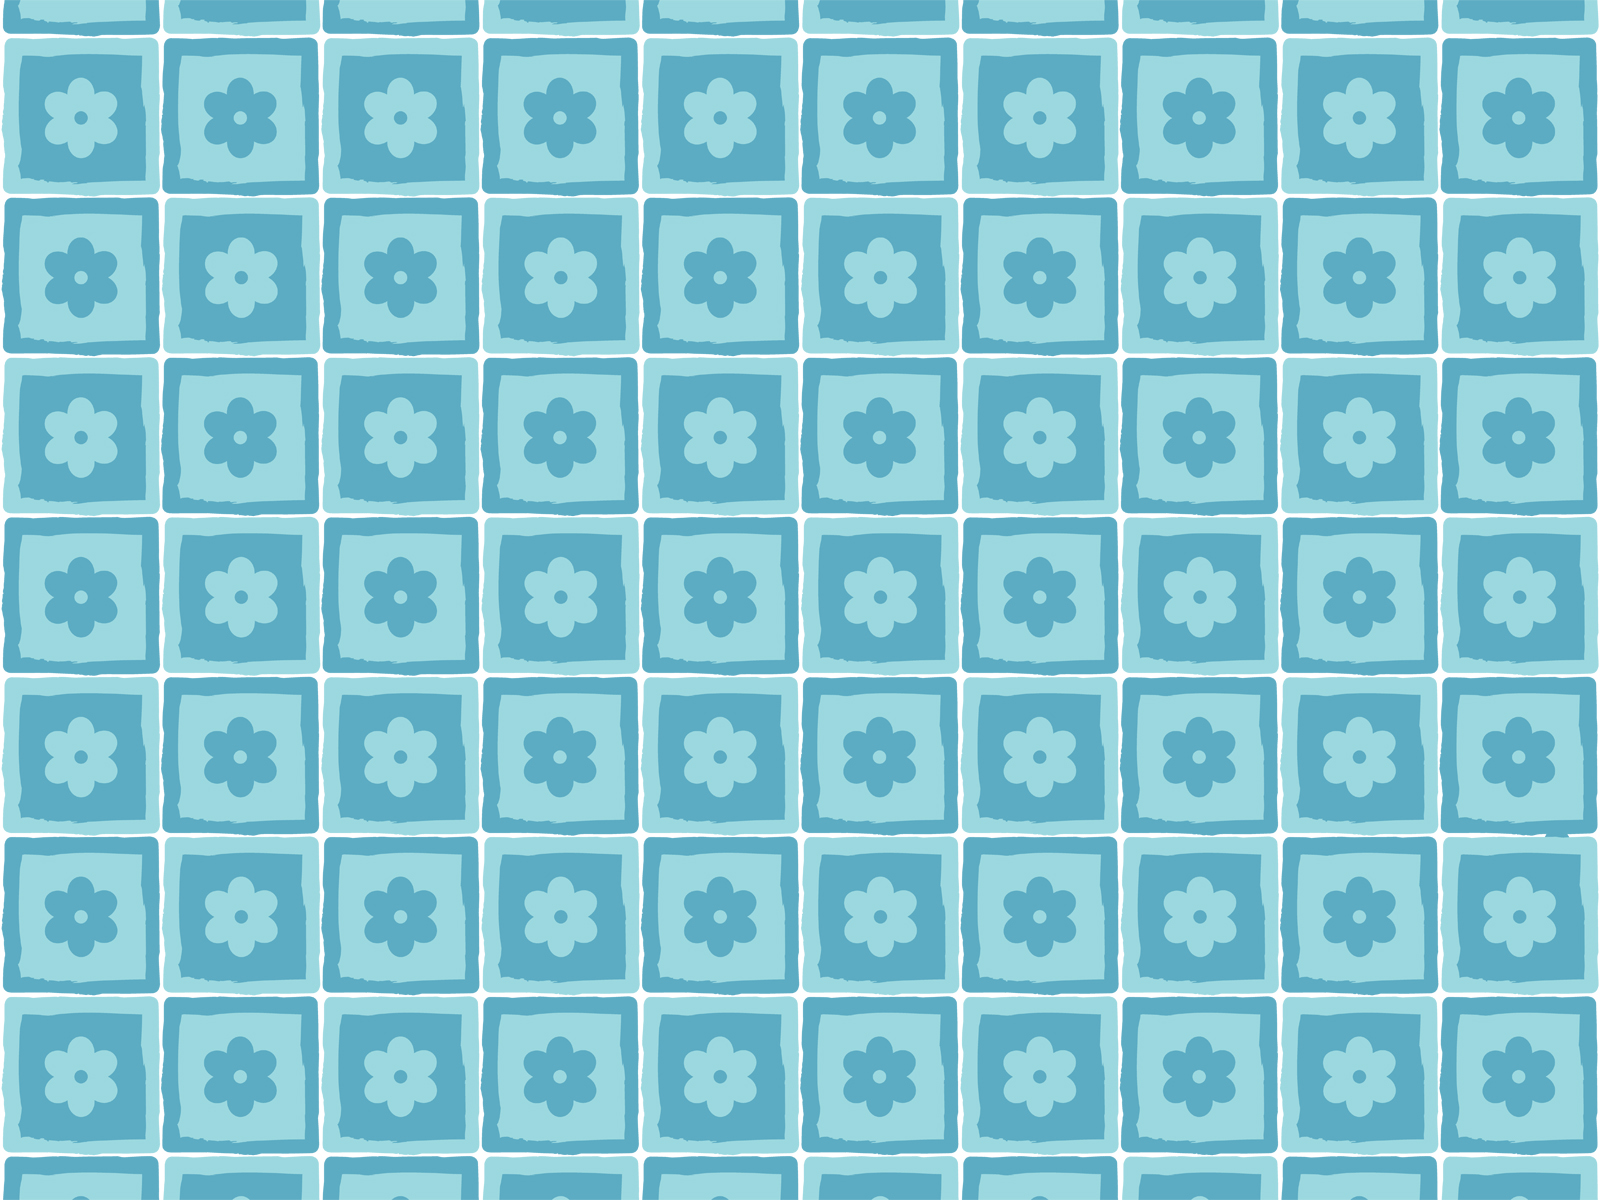 Flower Squares Power Background